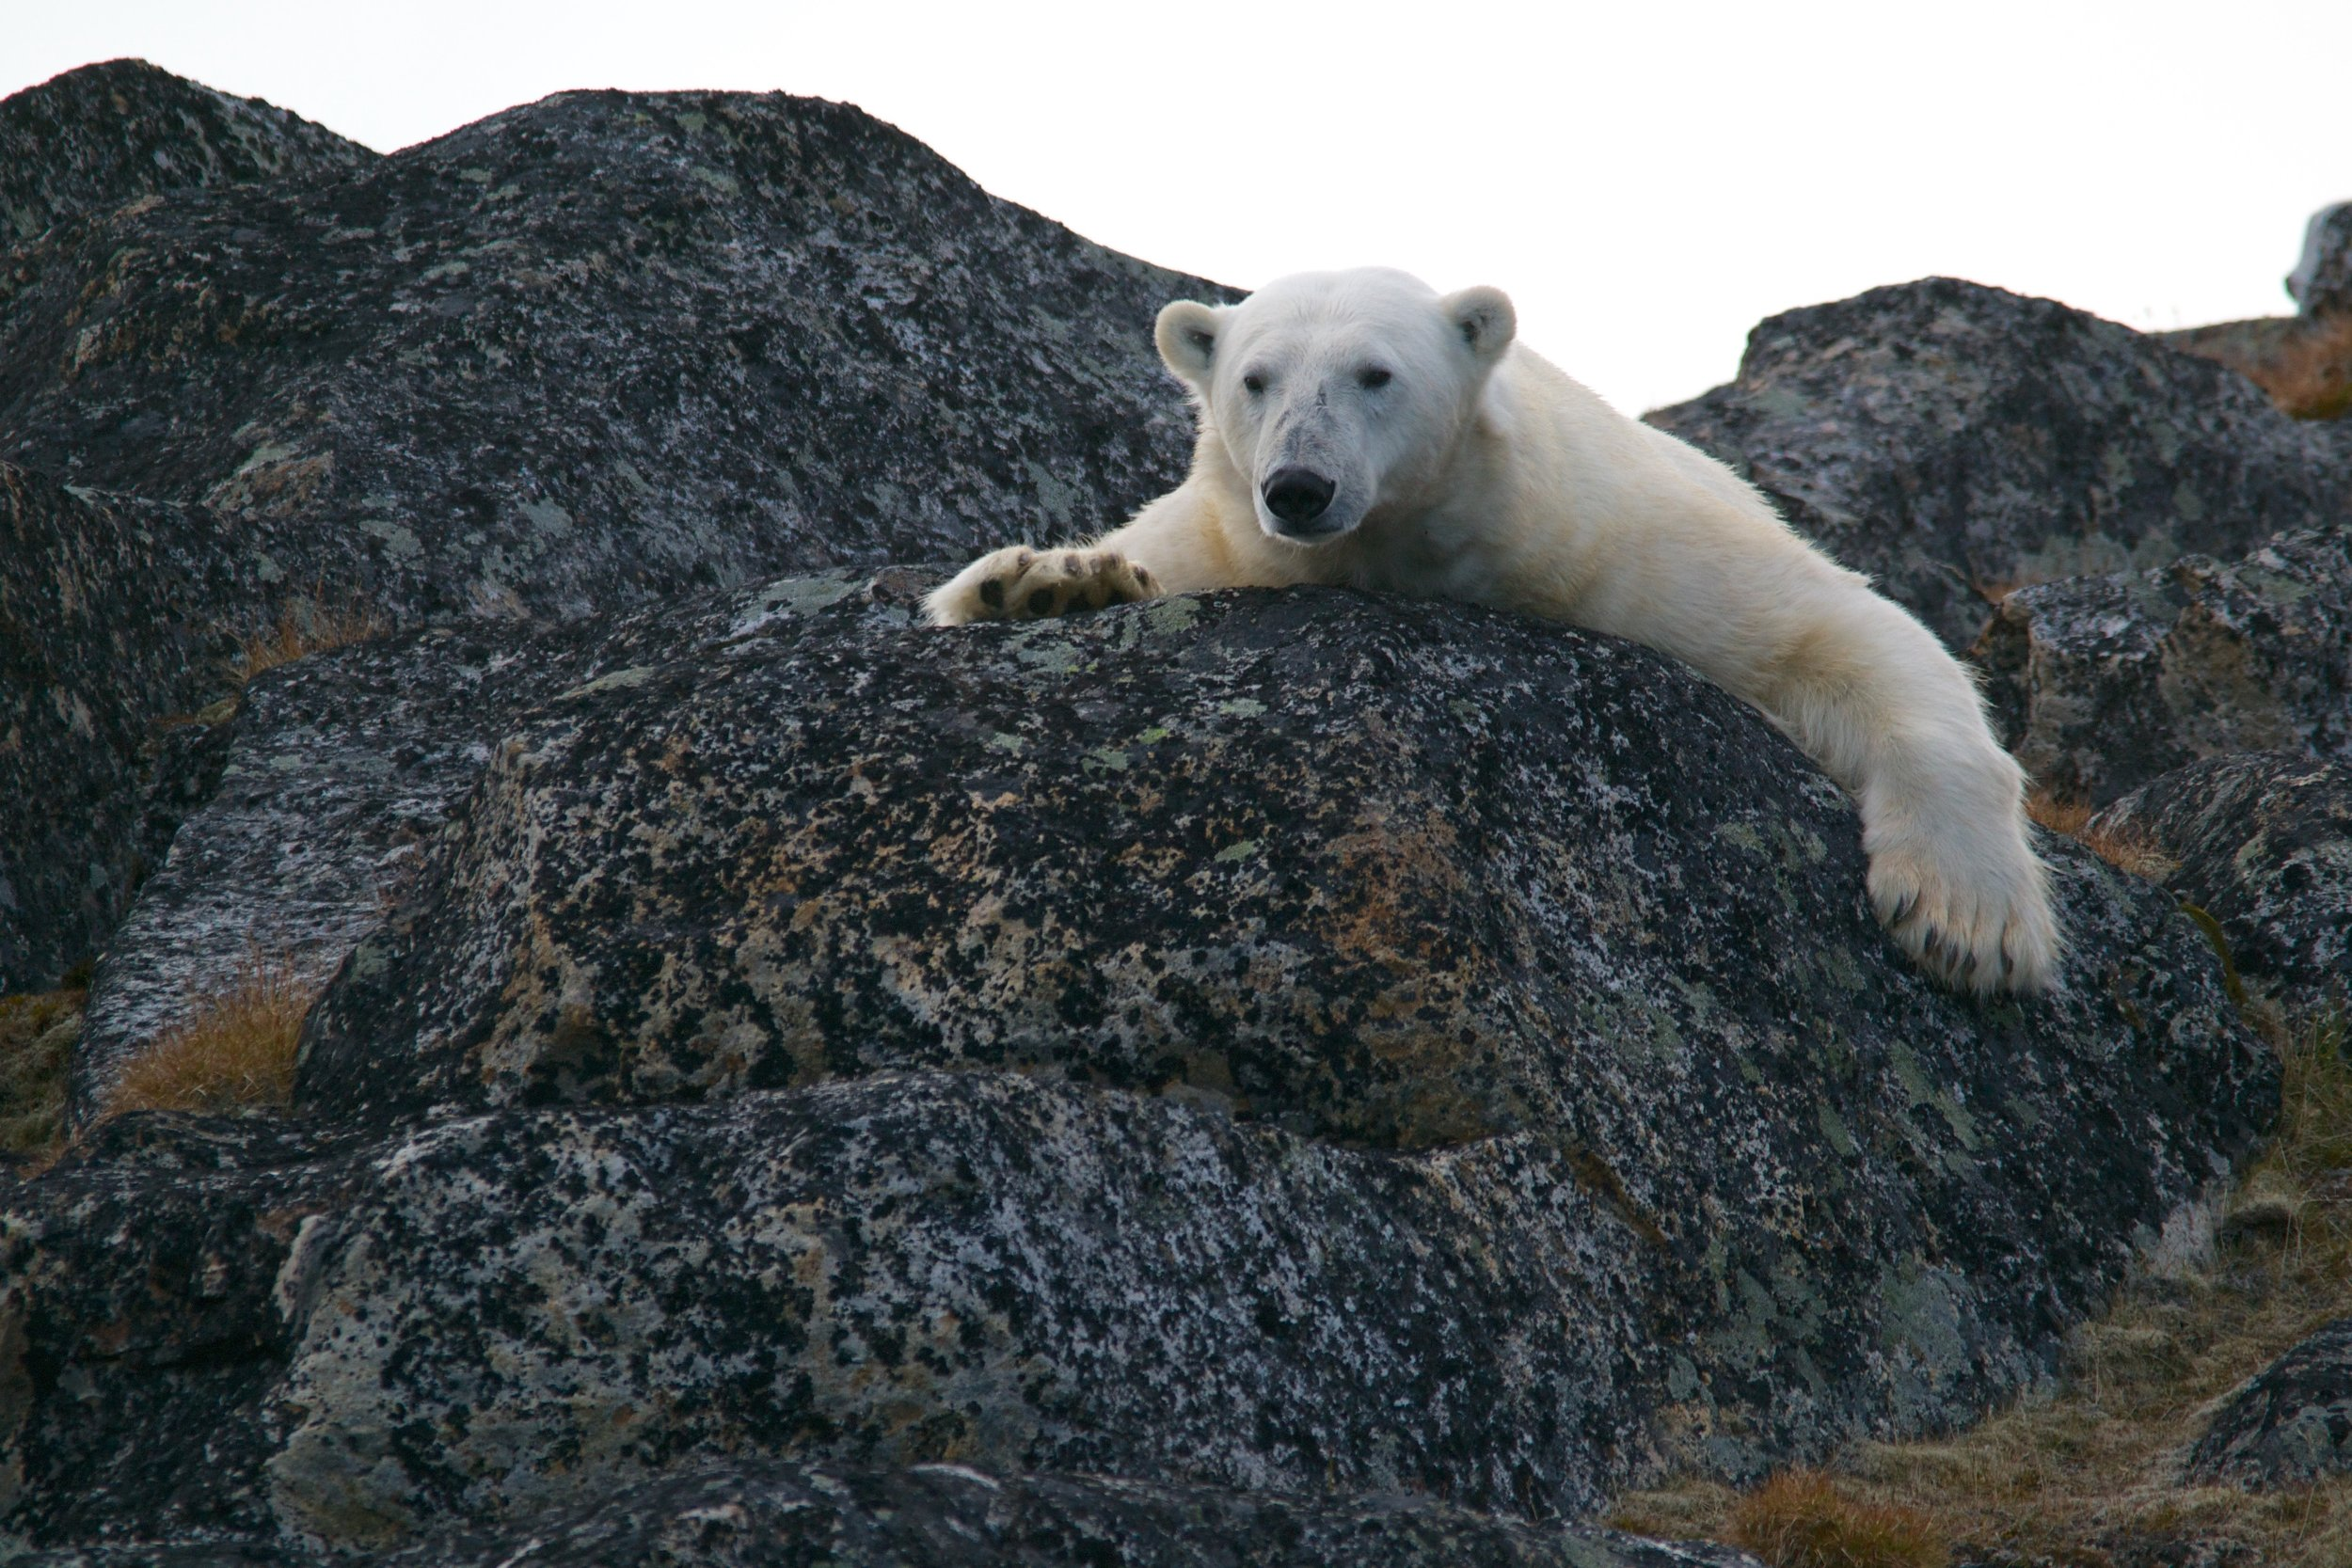 A polar bear lying on a rock with no snow in sight